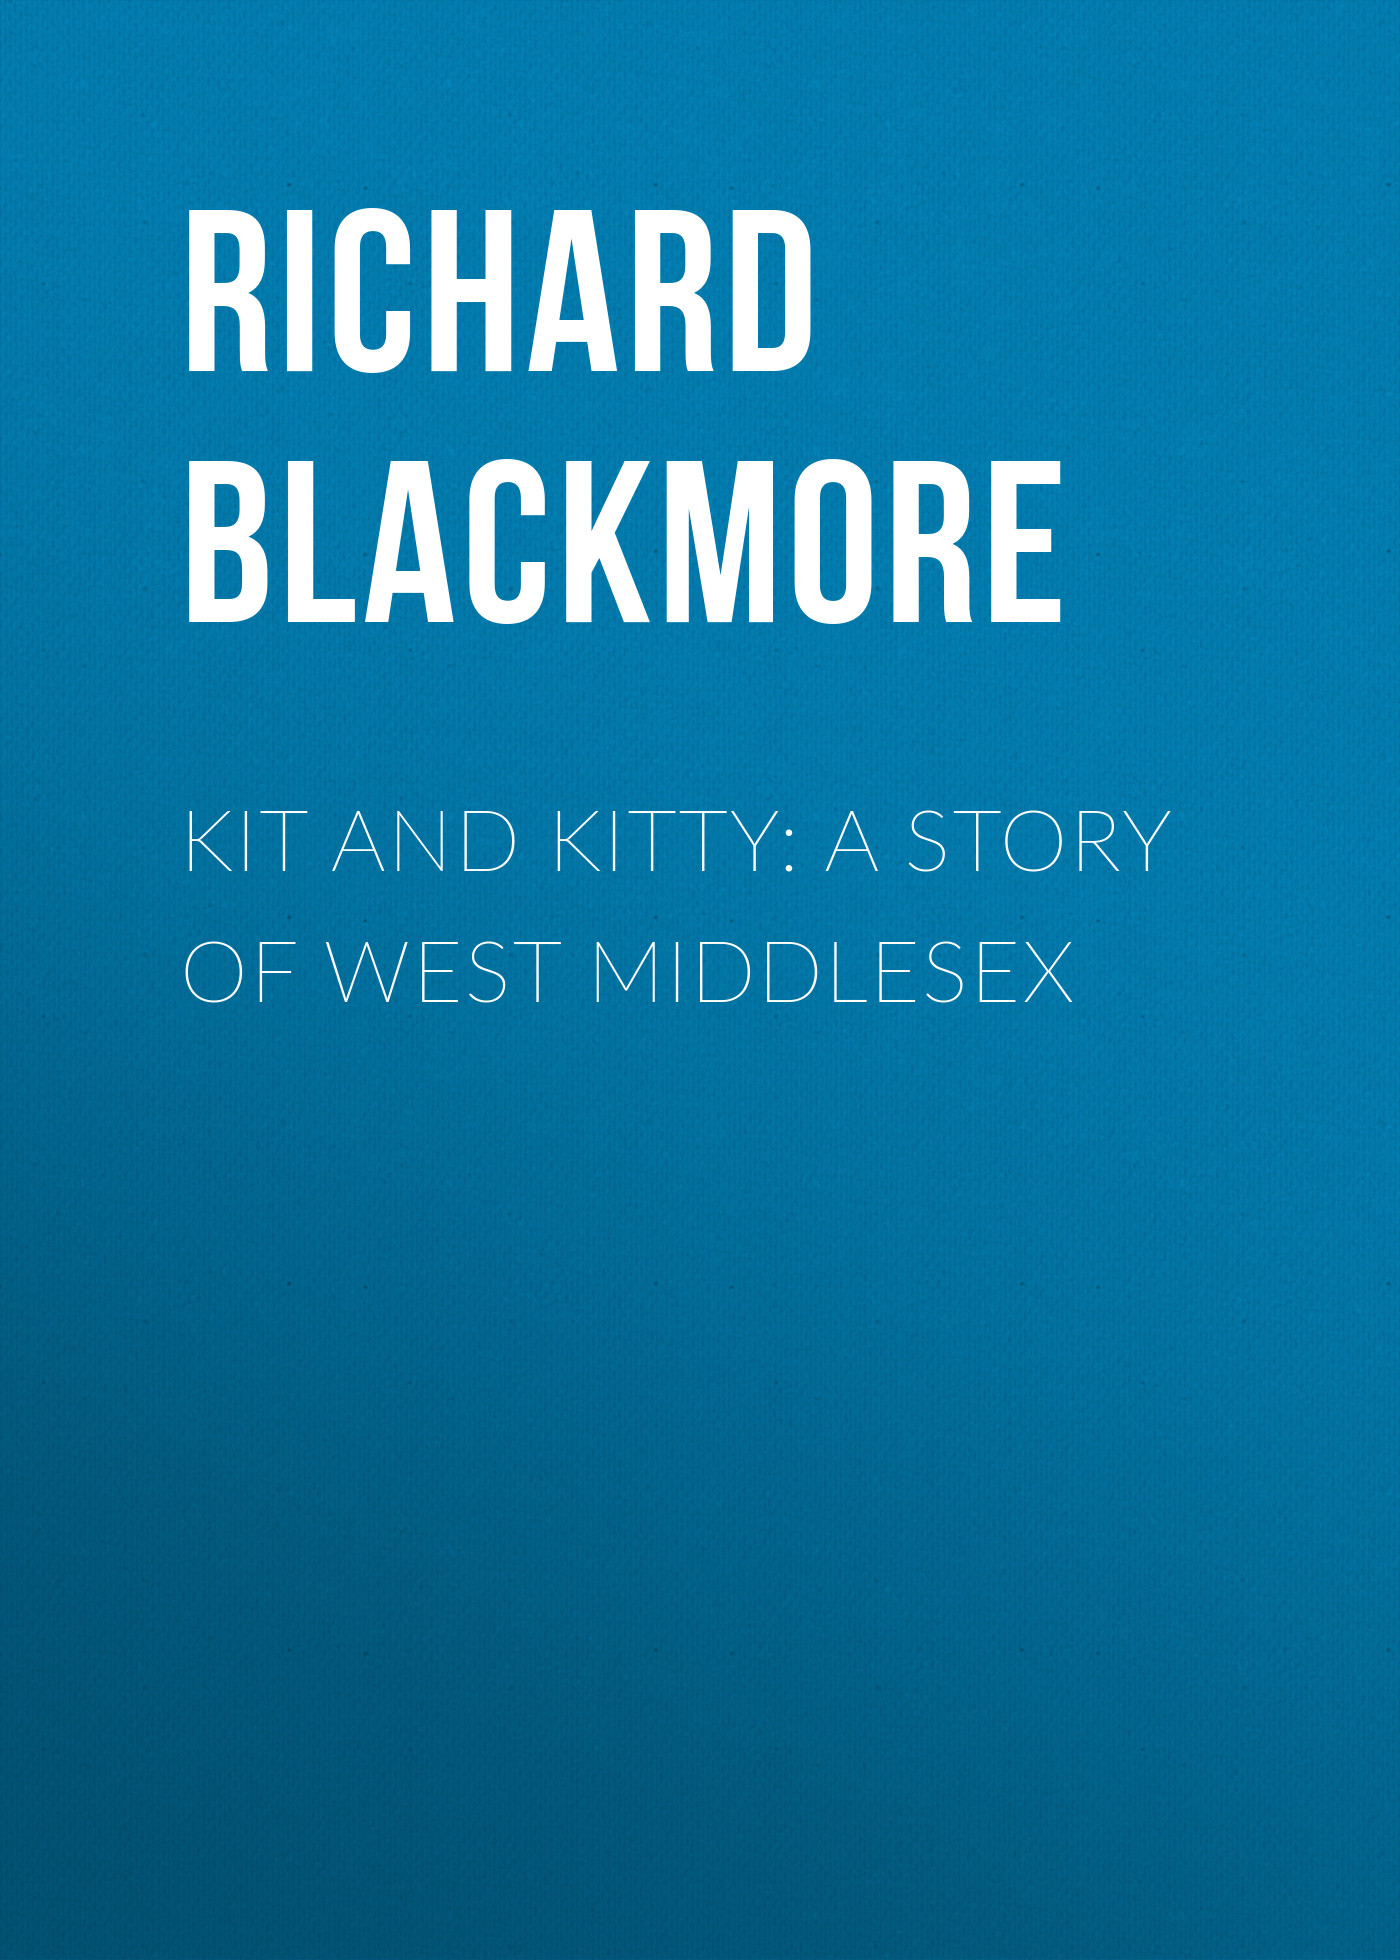 Blackmore Richard Doddridge Kit and Kitty: A Story of West Middlesex blackmore richard doddridge cradock nowell a tale of the new forest volume 2 of 3